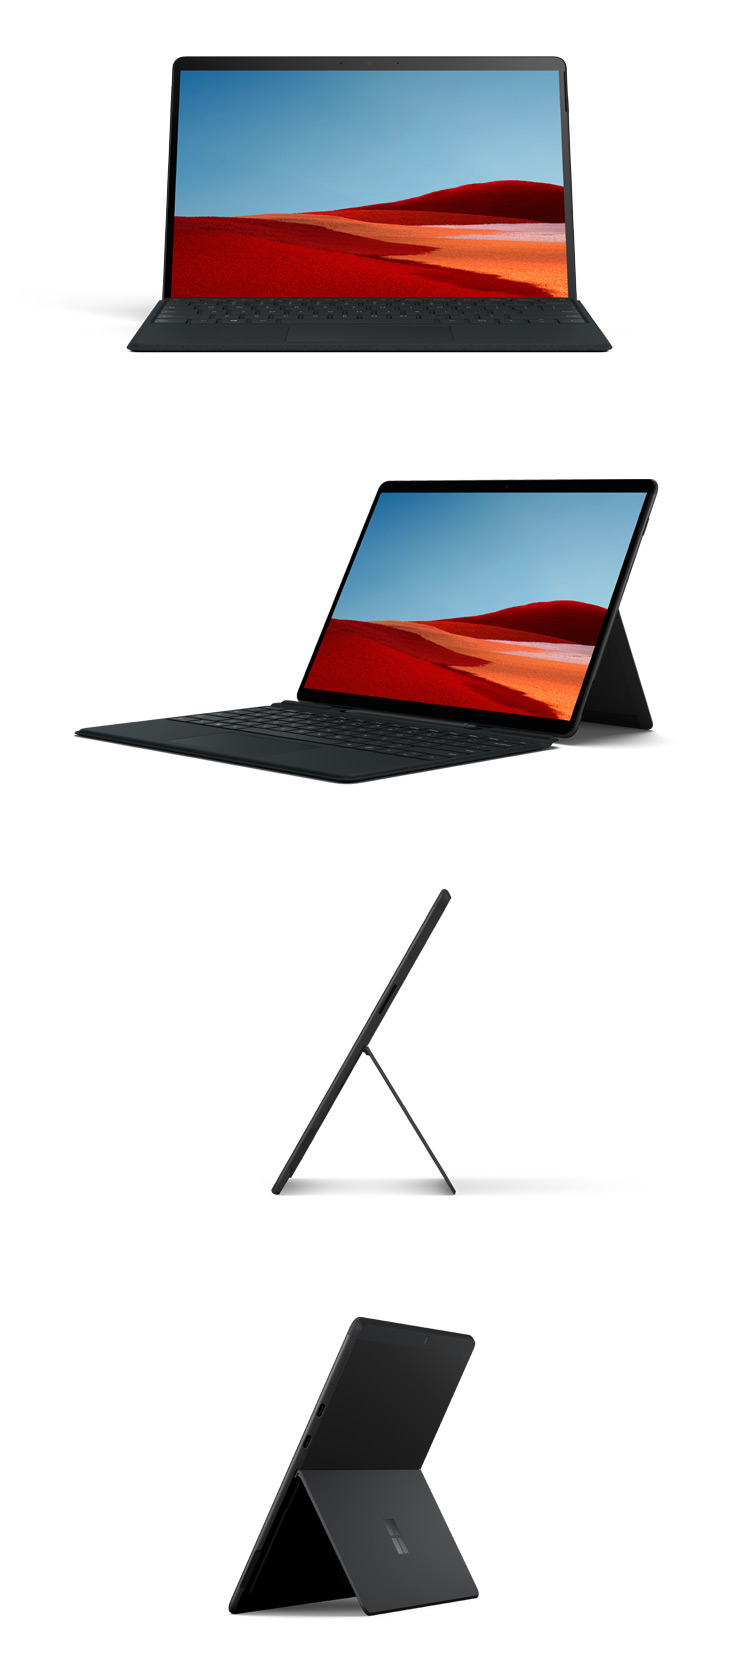 360 rotation of the Surface Pro X (Black)